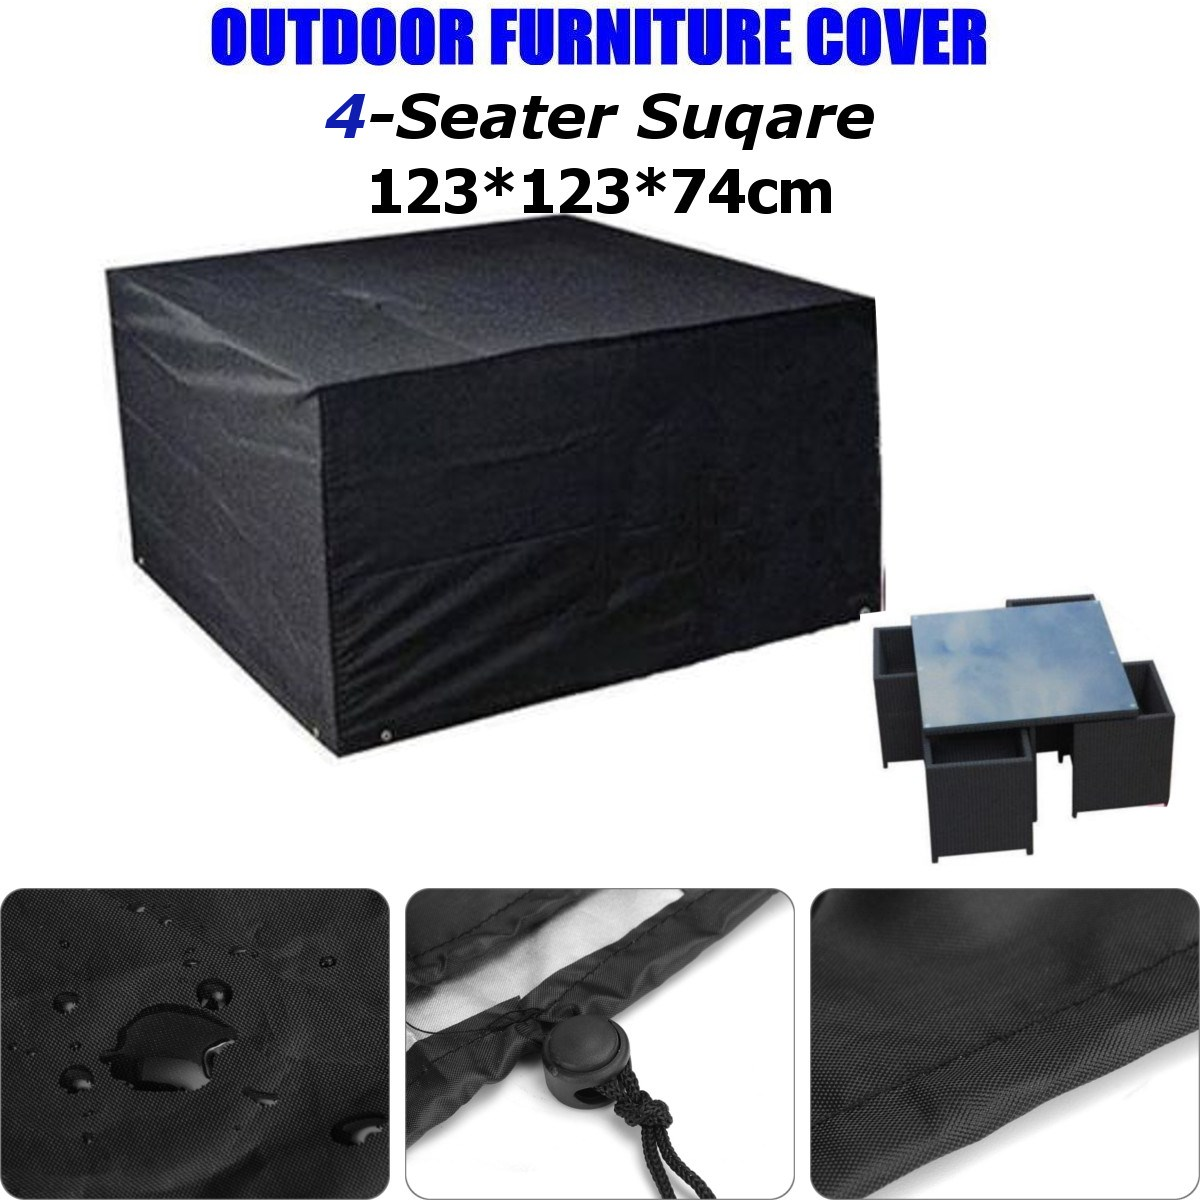 Waterproof Outdoor 4 Seater Table Chair Furniture Cover Polyester Patio Garden Garden Furnishing Table Cloth Rain Cover Raincoat